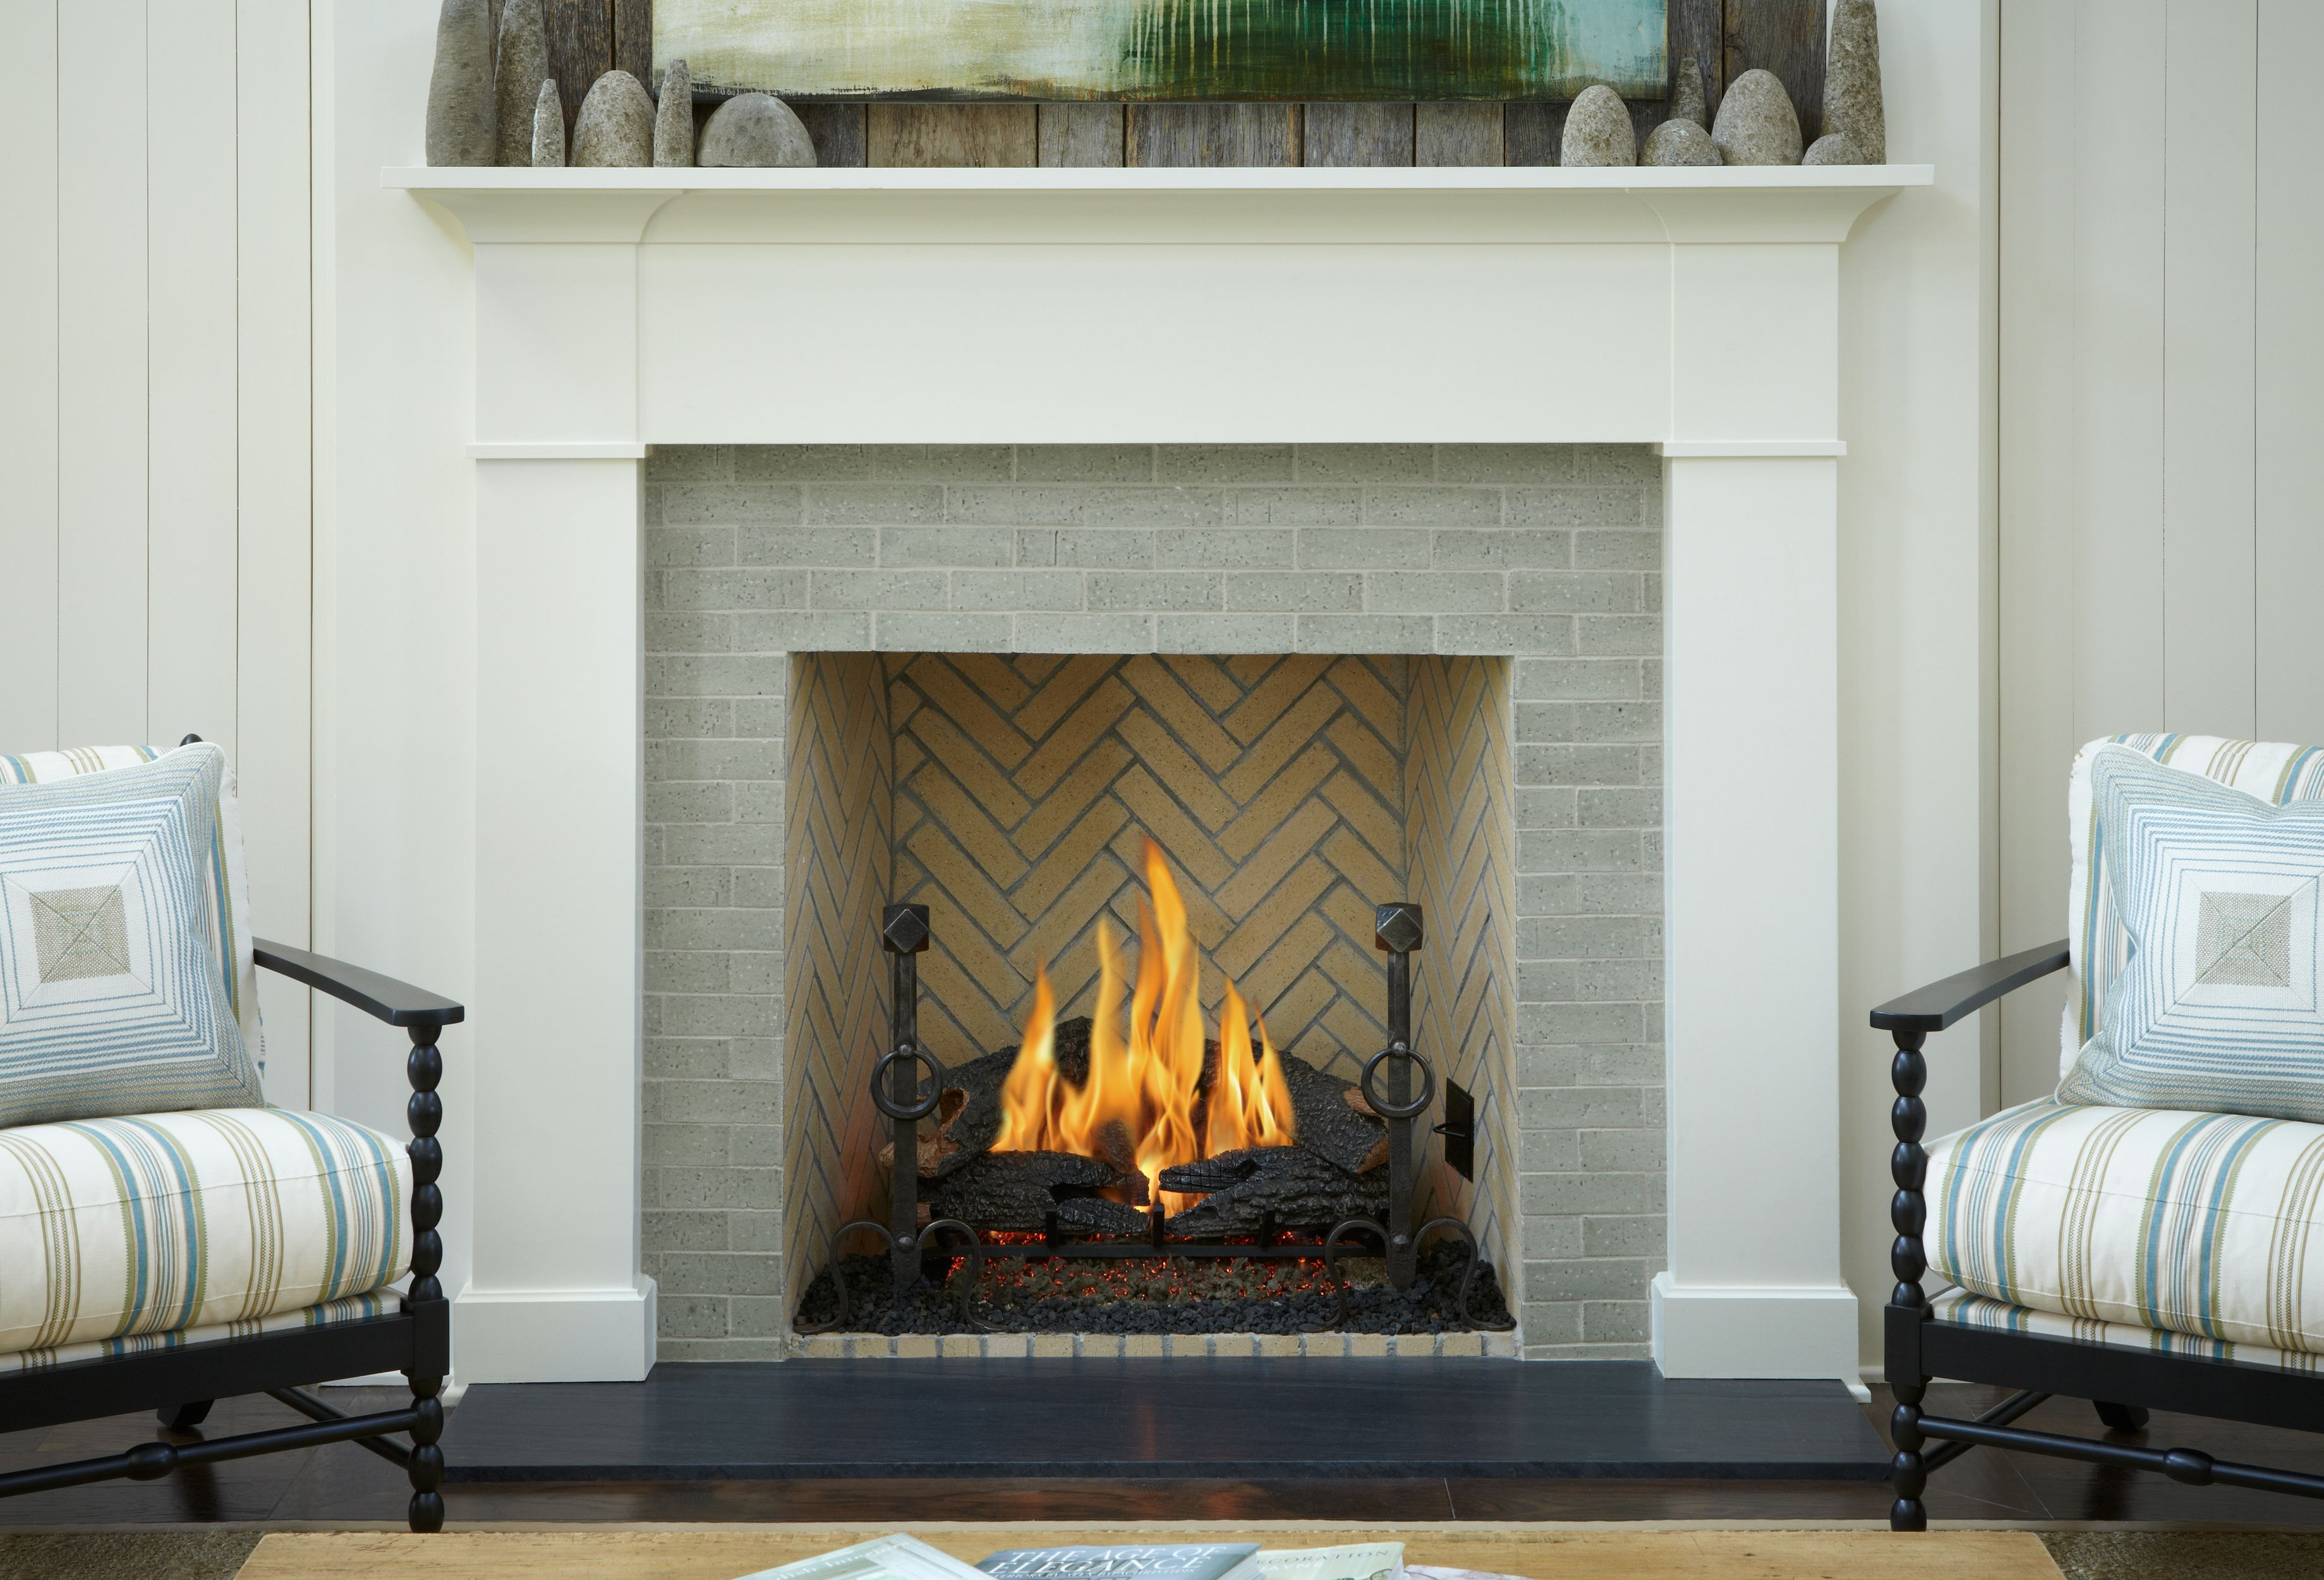 Fireplace Surround That Feels Clean Classic And Warm All At The Same Time Ann Sacks